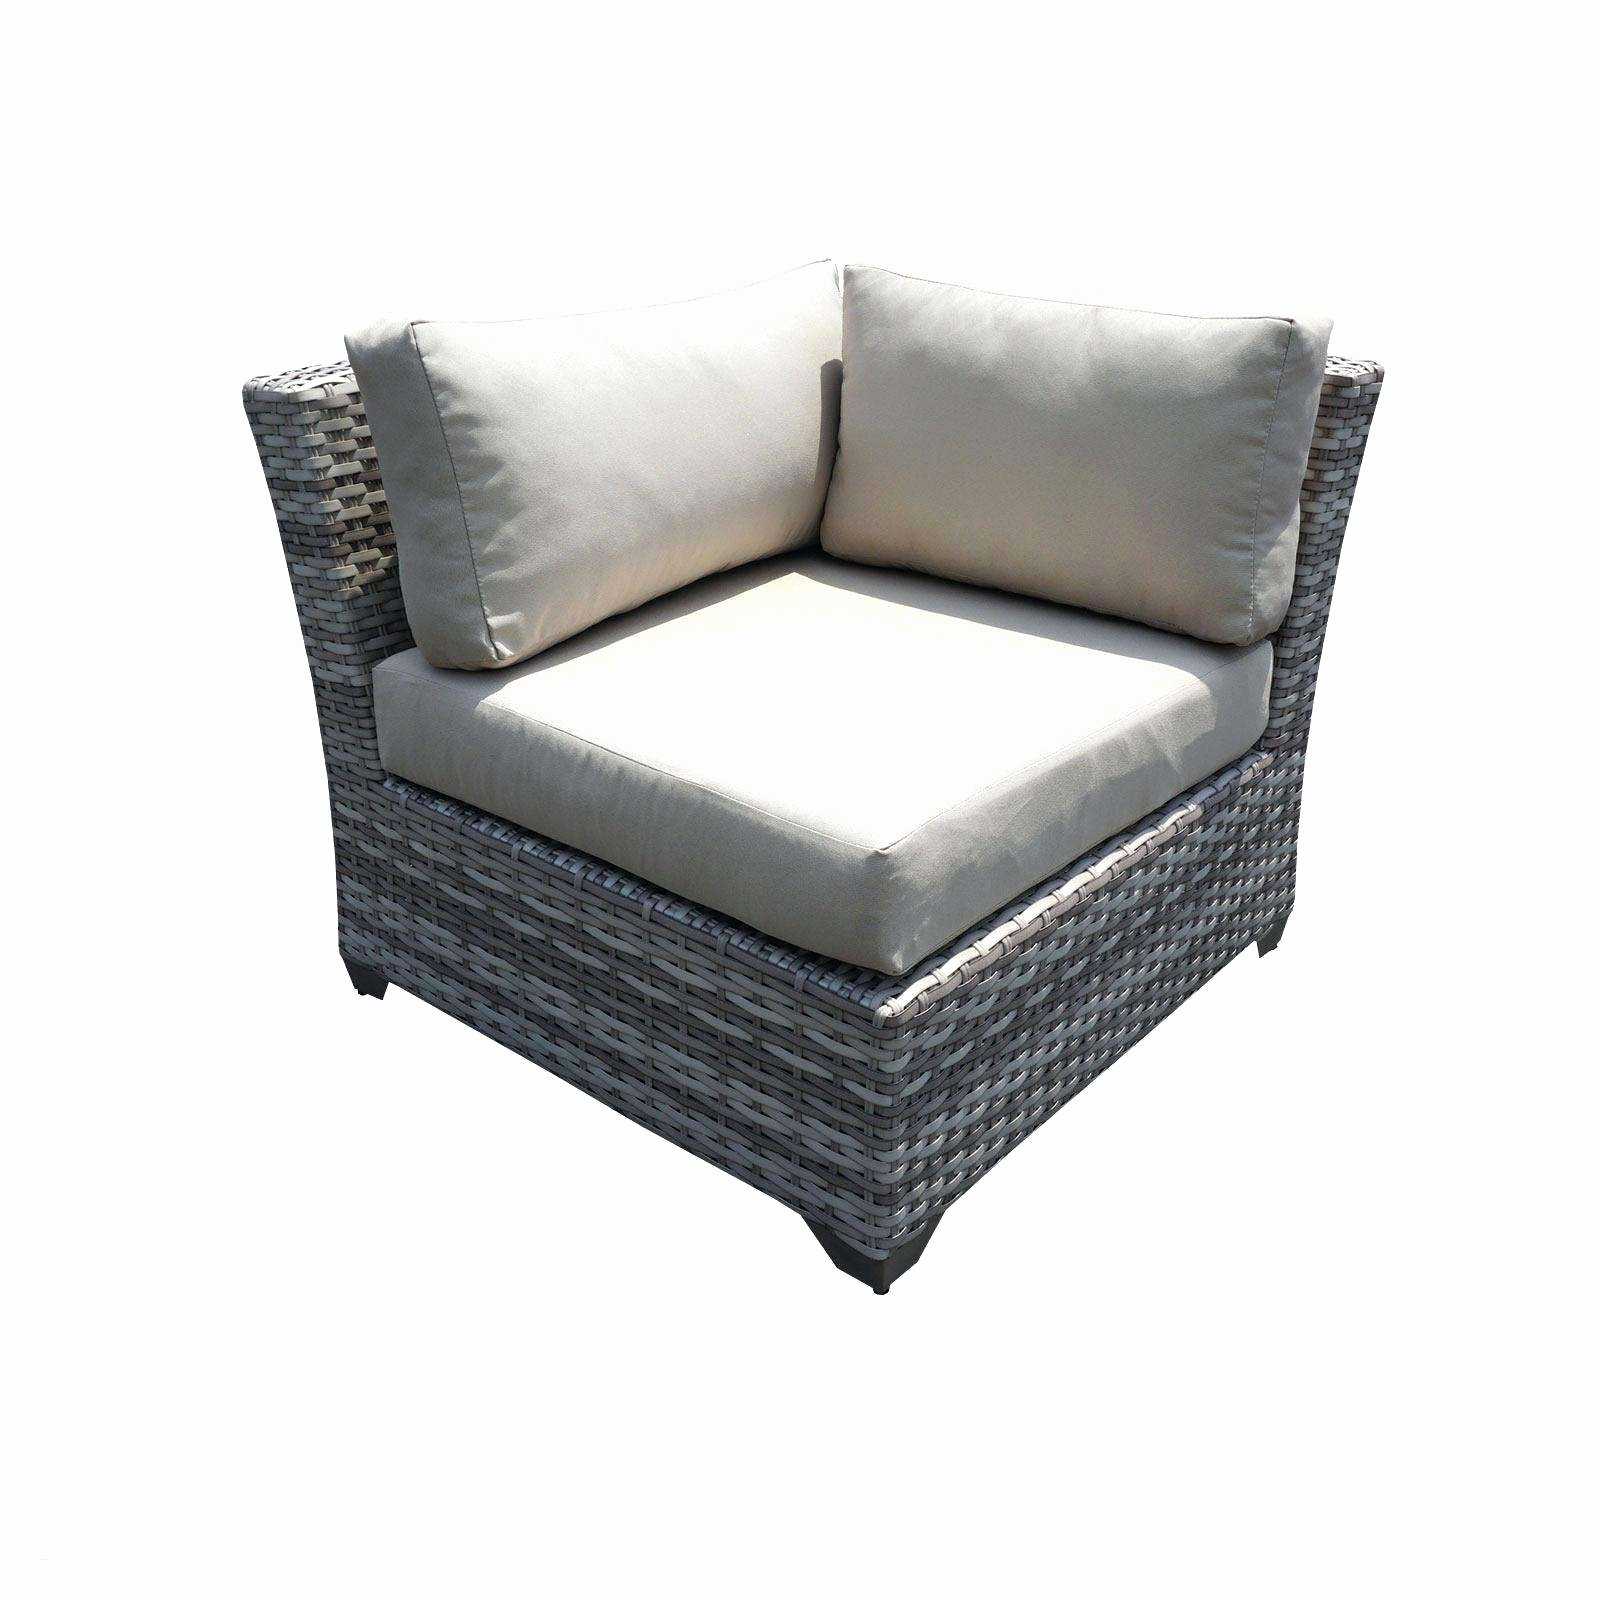 Simple 25 2 Piece Sectionals With Chaise Awesome | Russiandesignshow intended for Aquarius Dark Grey 2 Piece Sectionals With Raf Chaise (Image 25 of 30)